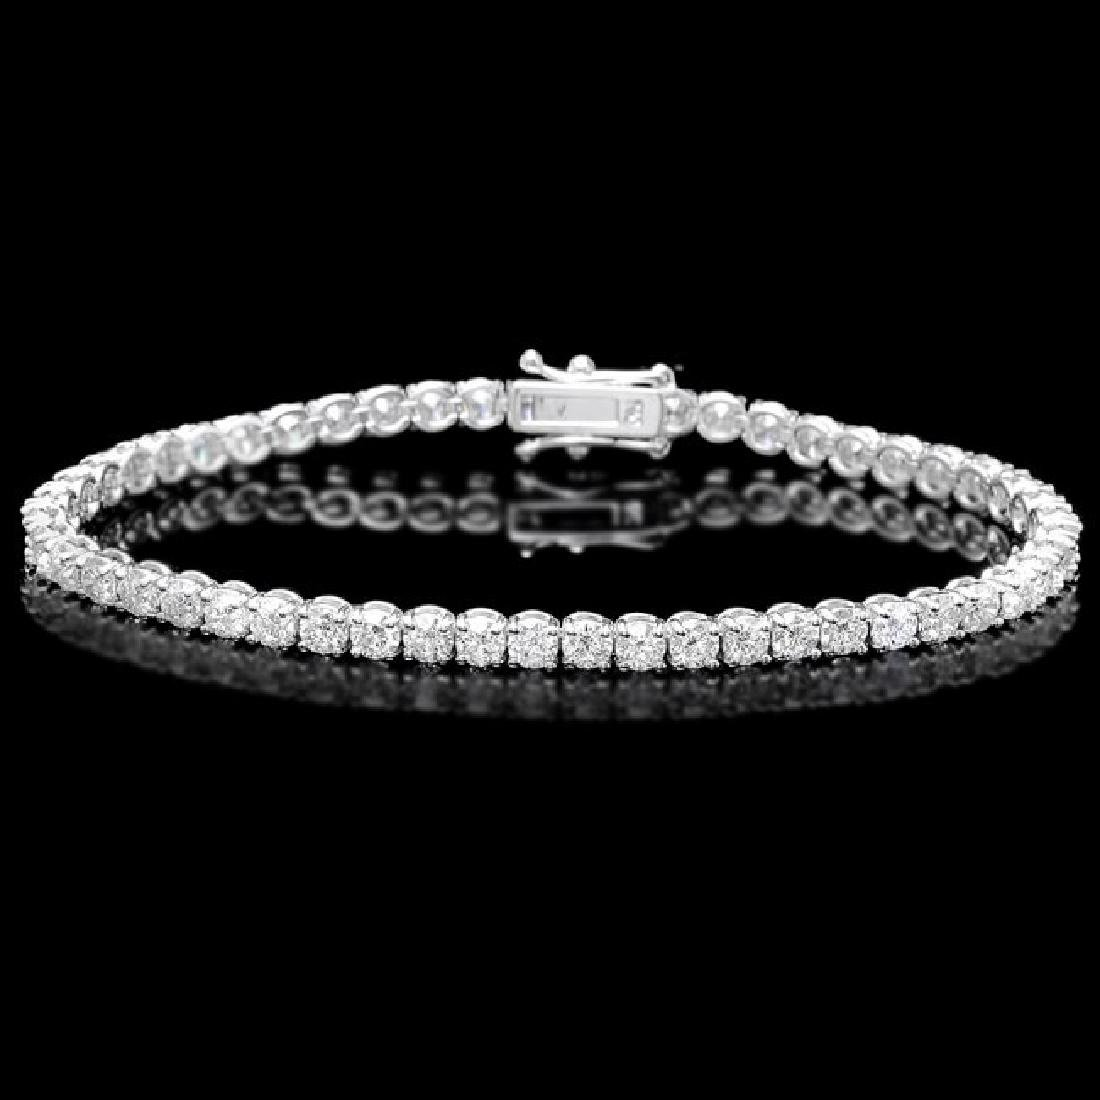 18k White Gold 7.50ct Diamond Bracelet